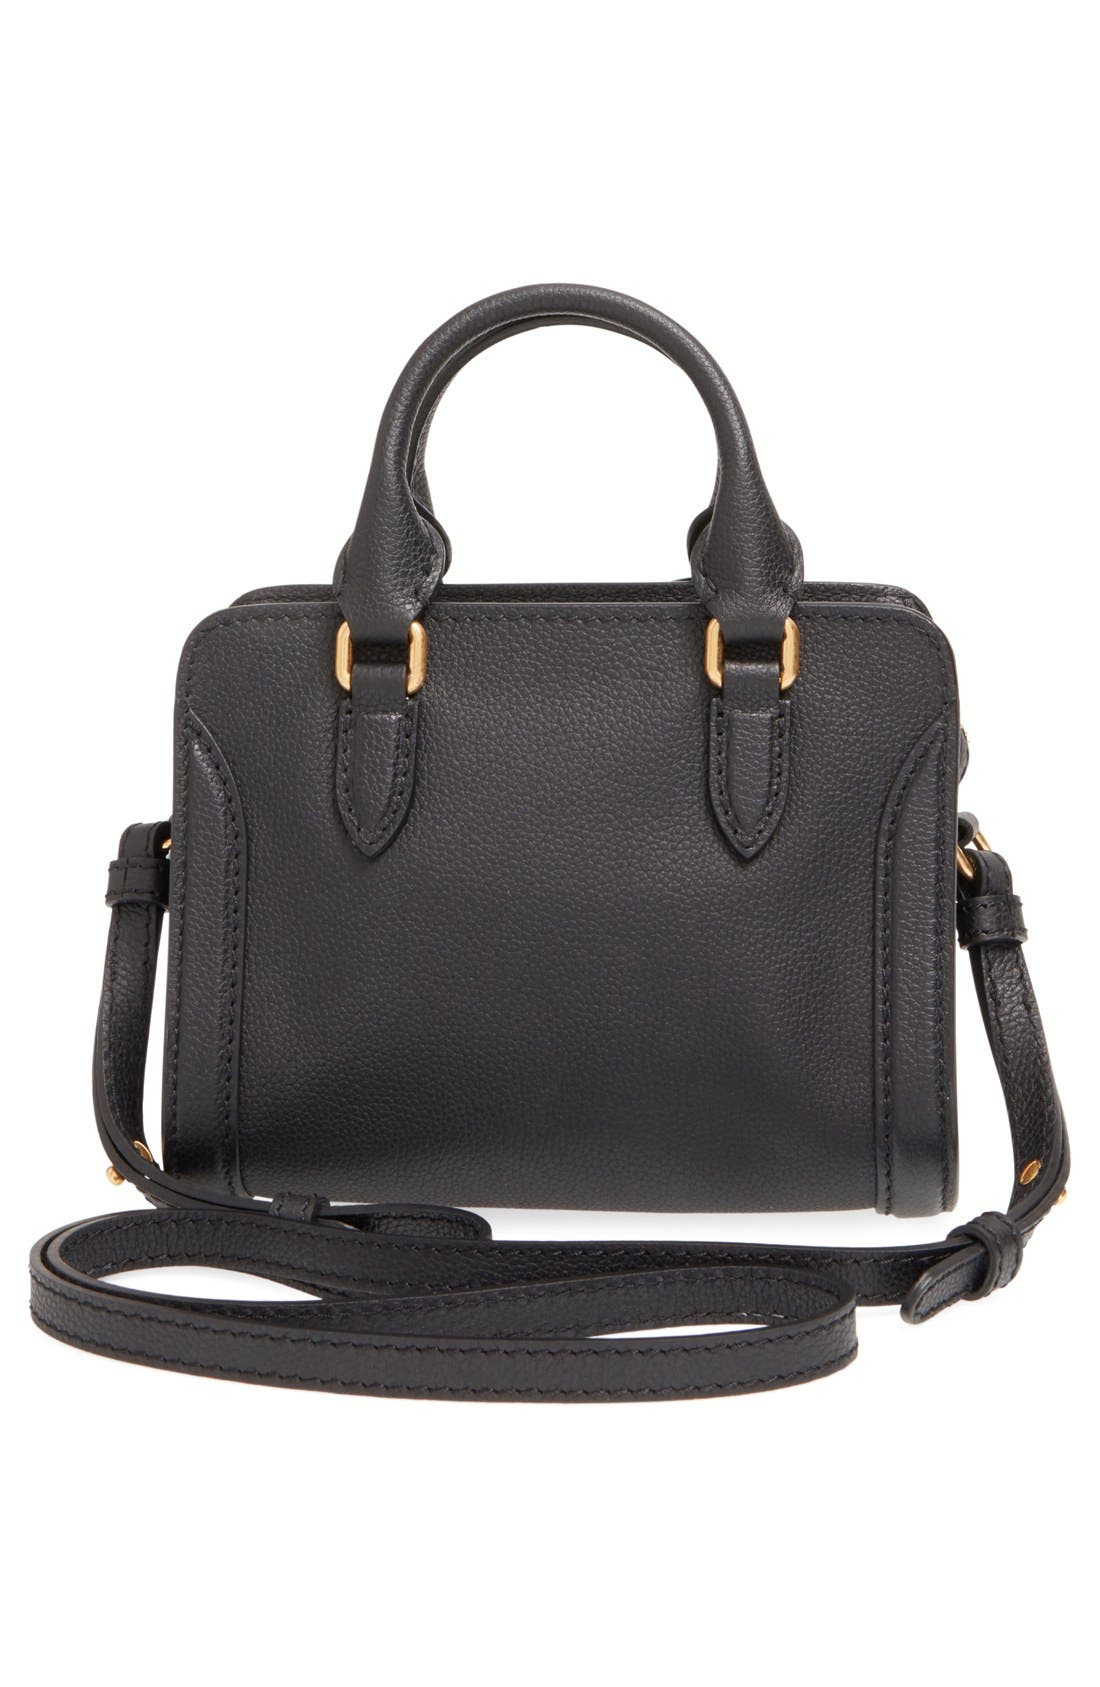 Alternate Image 3  - Alexander McQueen 'Mini Padlock' Calfskin Leather Satchel